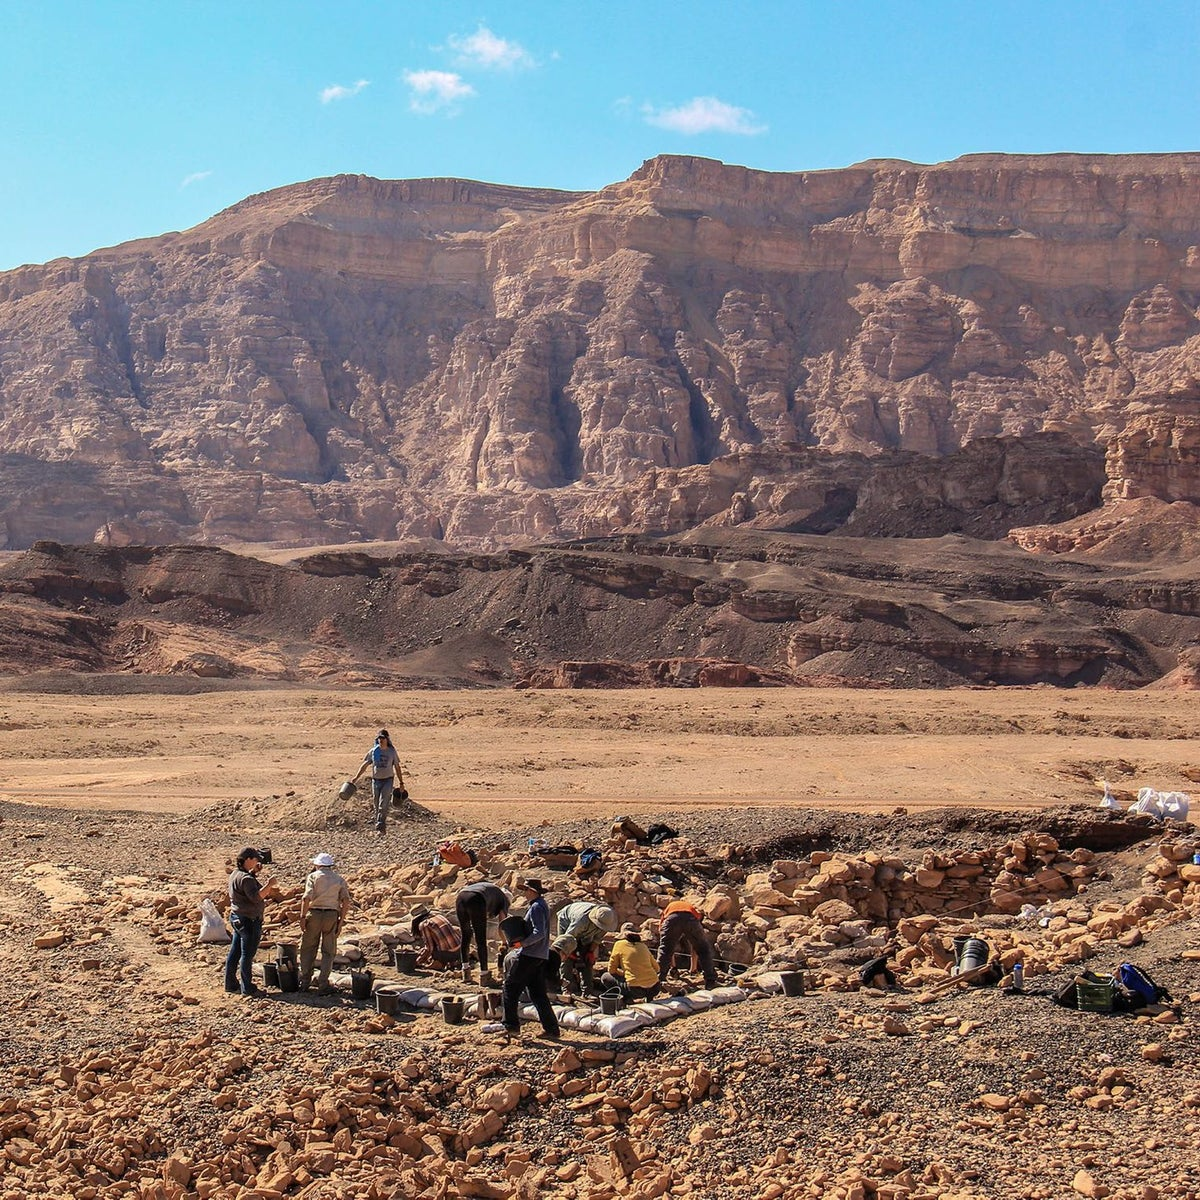 Archaeologists uncover remains of an Edomite copper production facility on the so-called Slaves' Hill in Timna. The dark stones that cover most of the site are slag left over from the smelting process